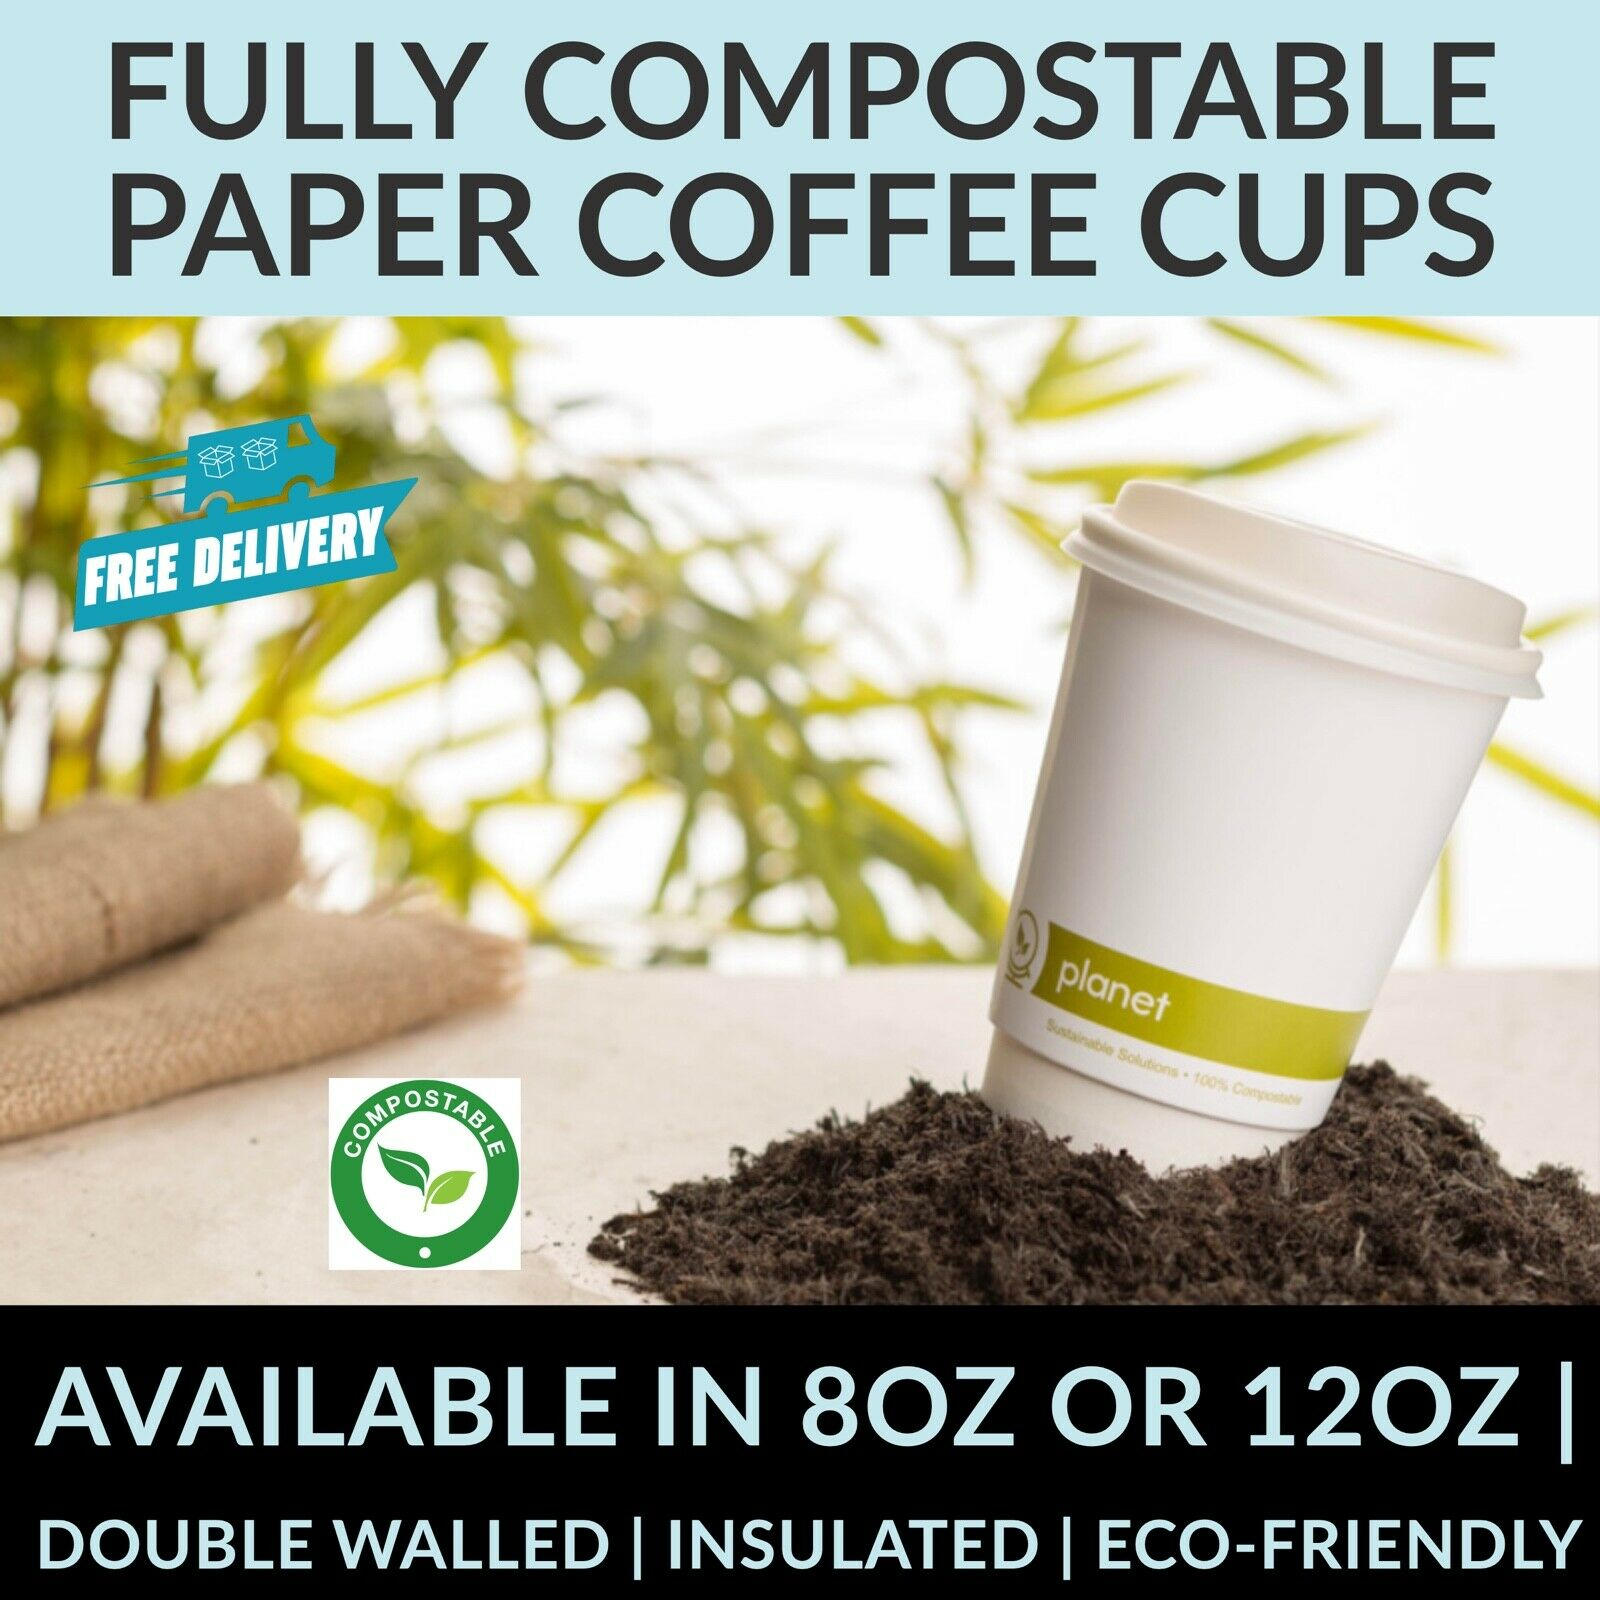 BIODEGRADABLE Paper CUPS Compostable